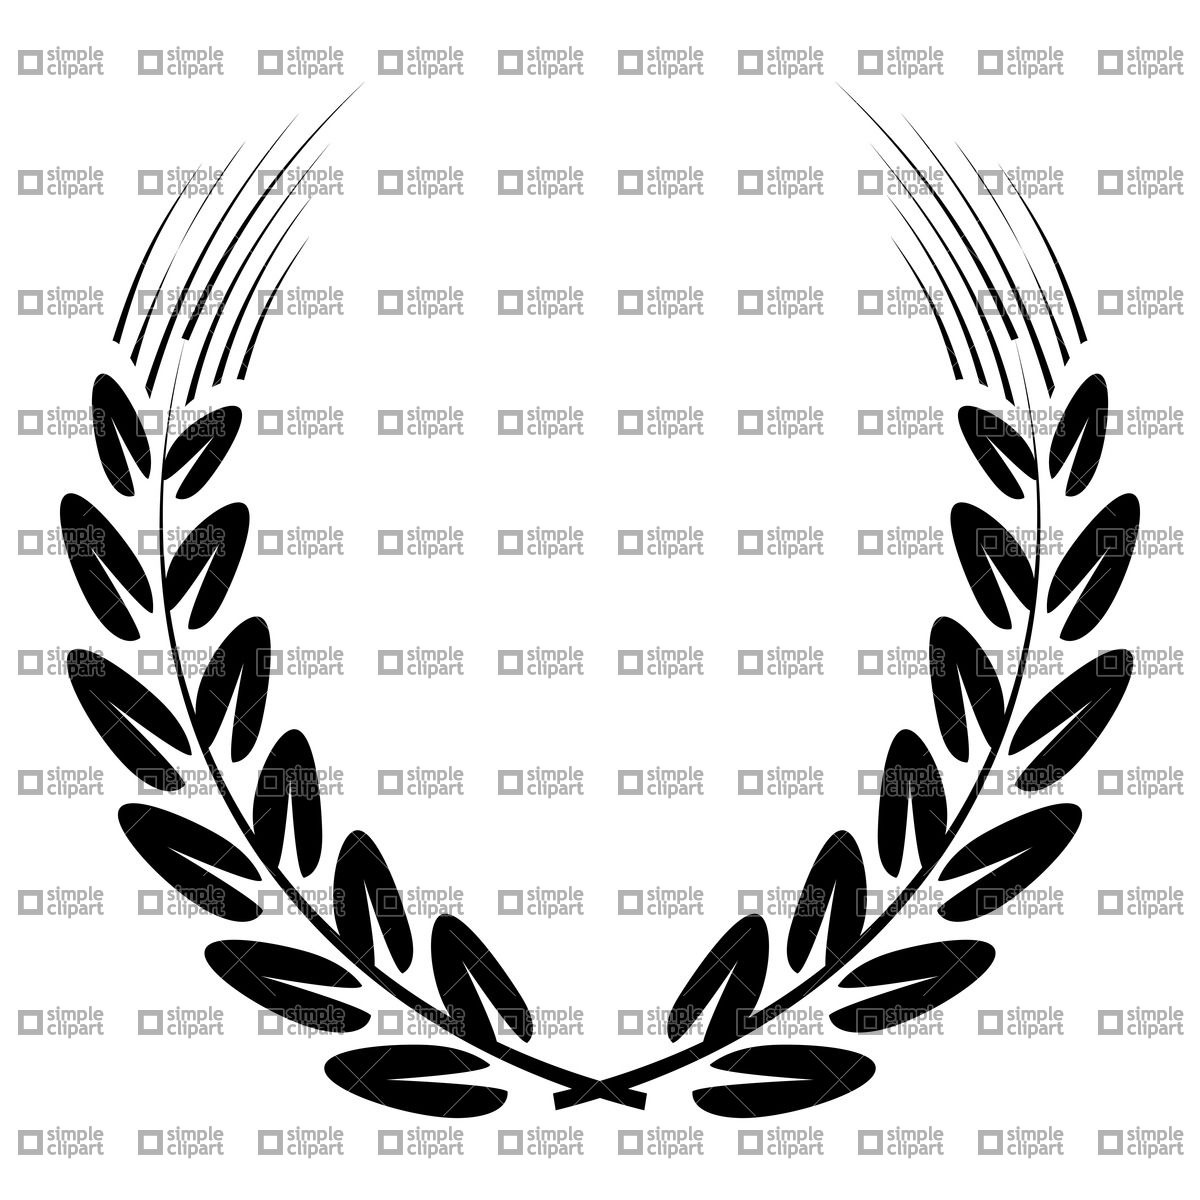 1200x1200 Black Wreath Made Of Ear Of Wheat Vector Image